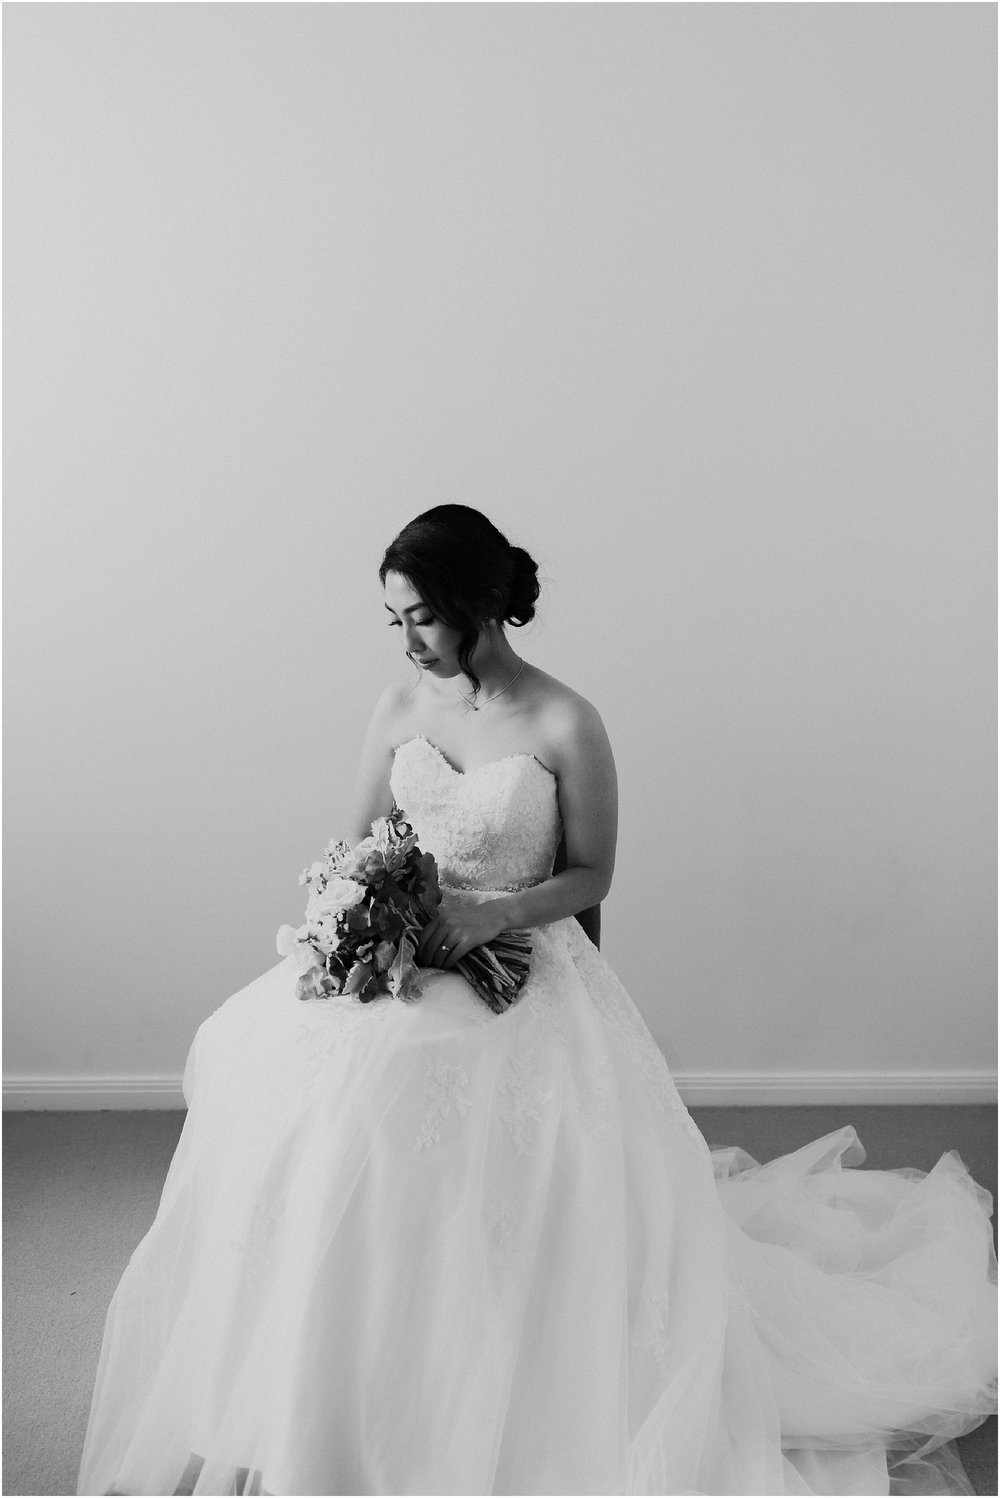 Classic Black and White Bride Portrait